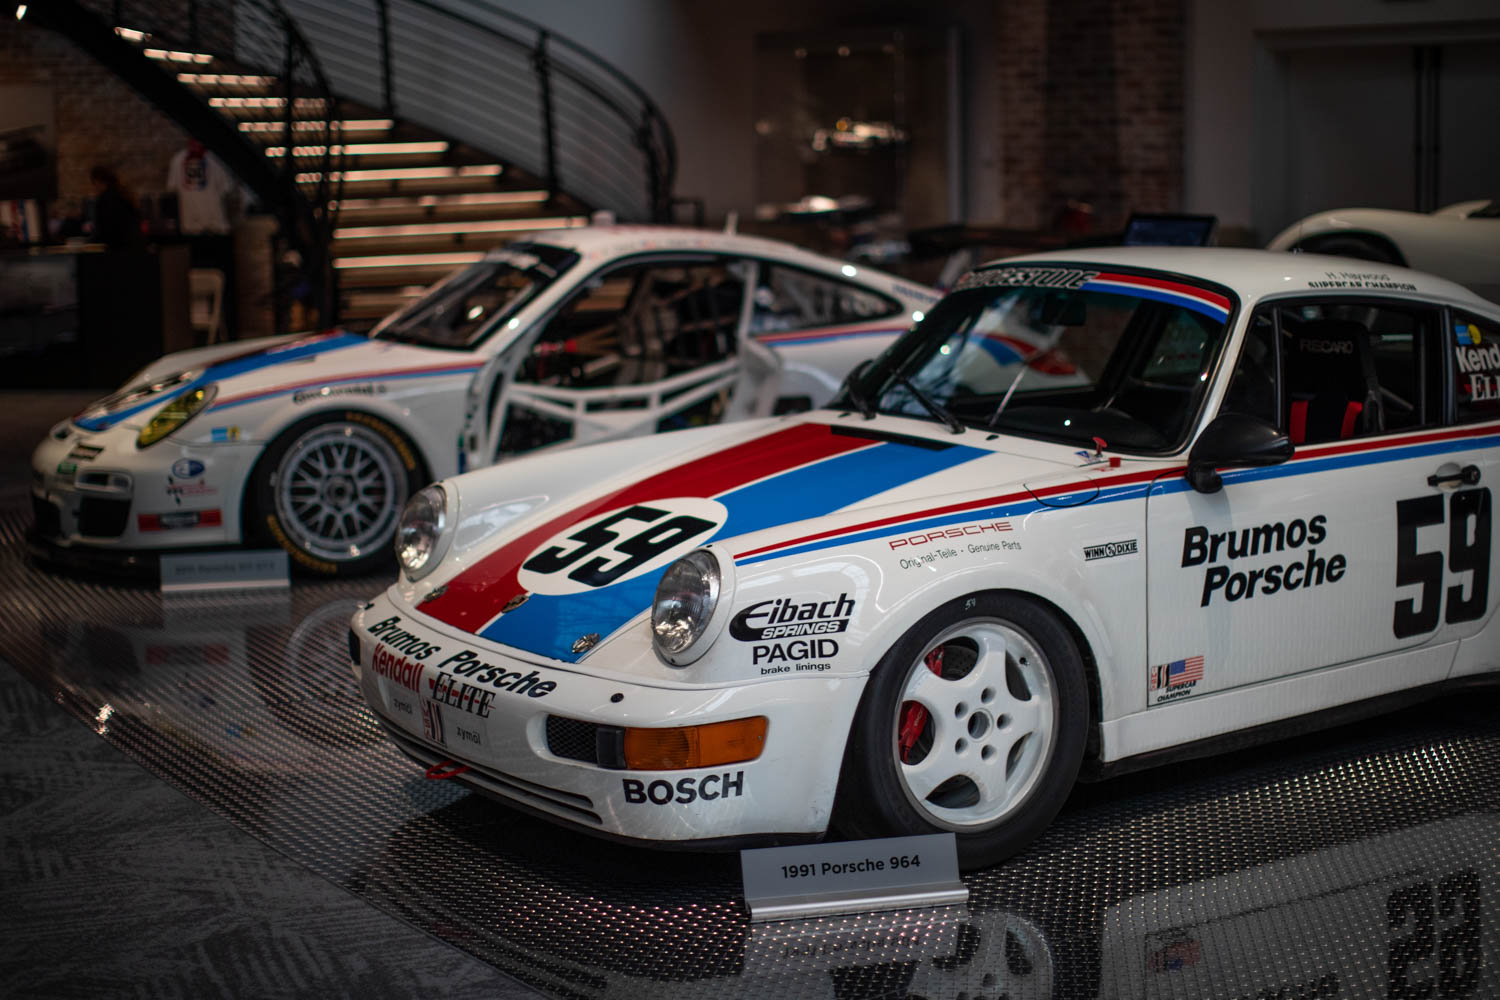 The Brumos Porsches ran with red and blue stripes and the number 59, an ode to the U.S.S. Forrestal, CV-59.